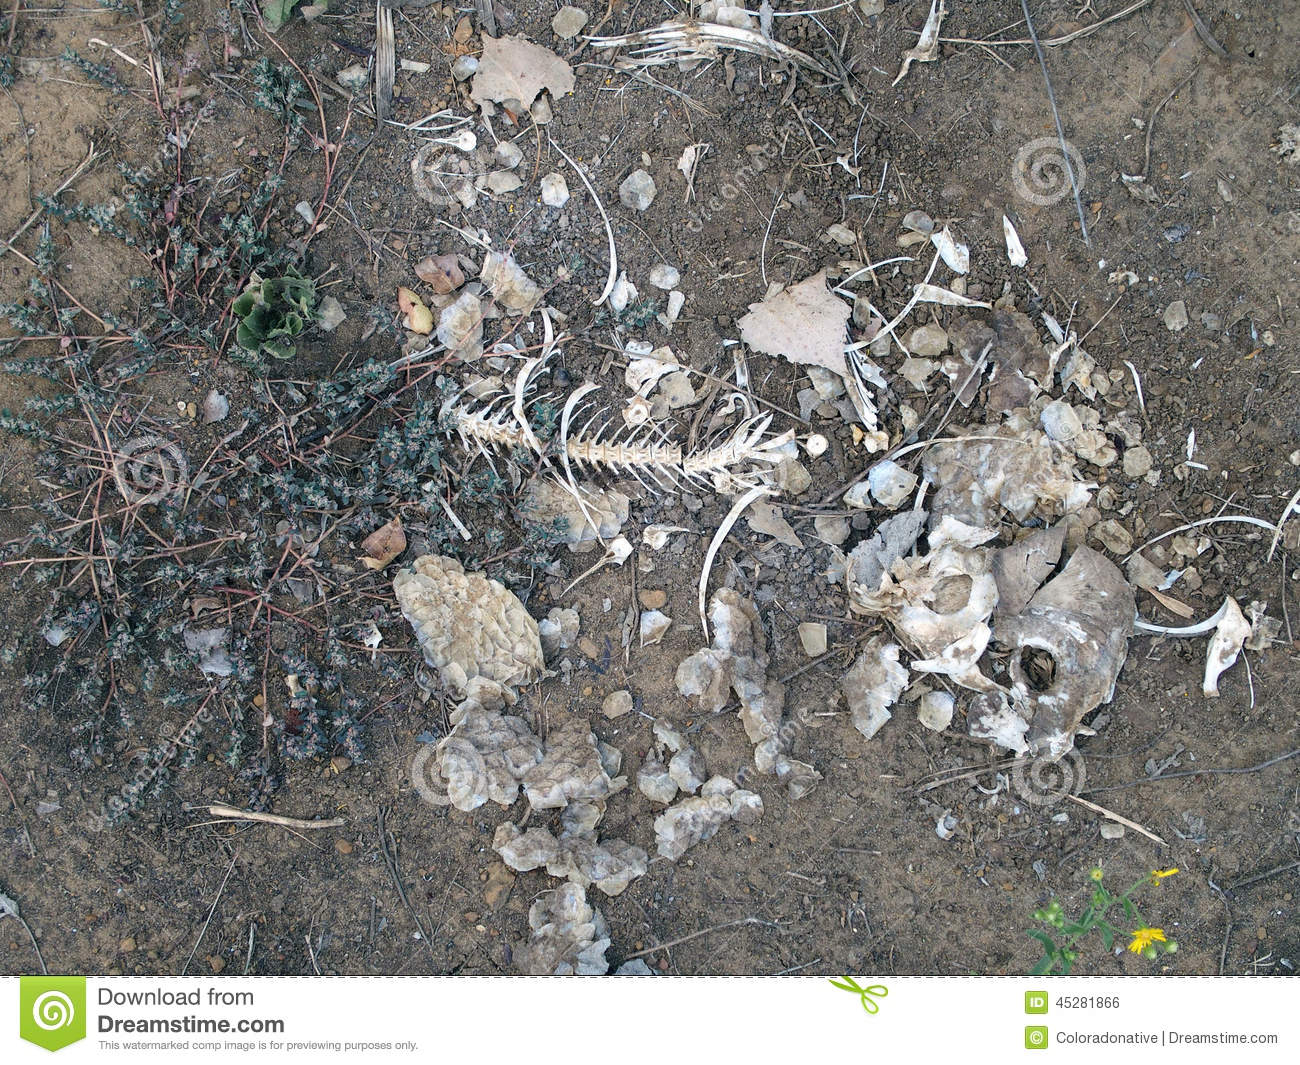 3a1661fd880b Scattered bones of a fish left behind in a dry lake drained by drought.